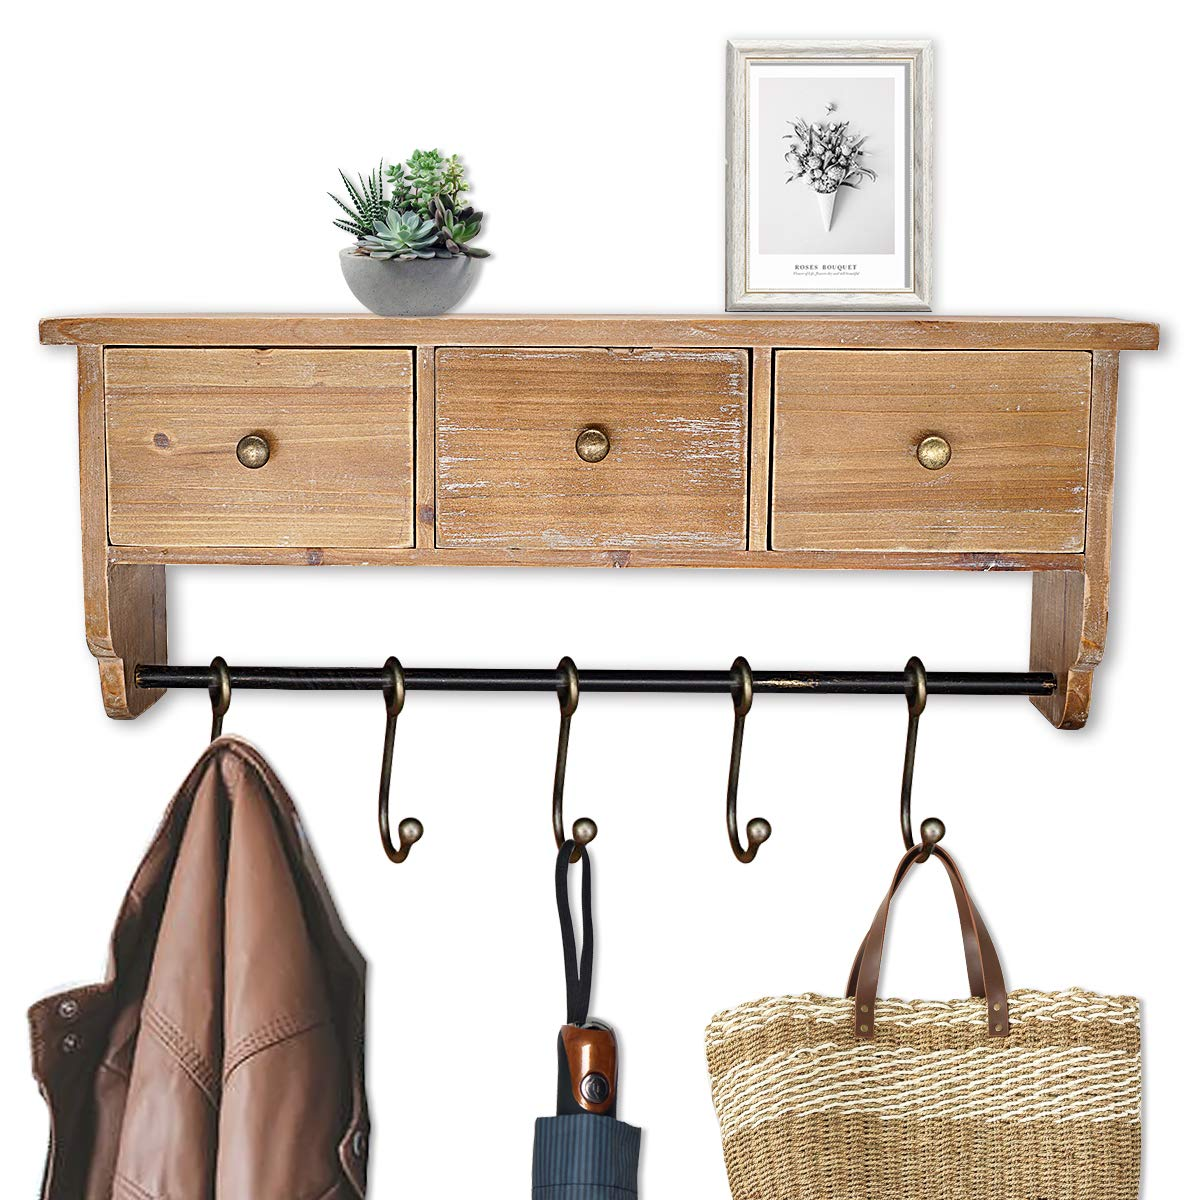 Coat Rack Shelf Wall Mounted Rustic Organizer Shelf with Hooks and Baskets, Solid Wooden Shelf Rack for Entryway, Bedroom and Bathroom by biukpci